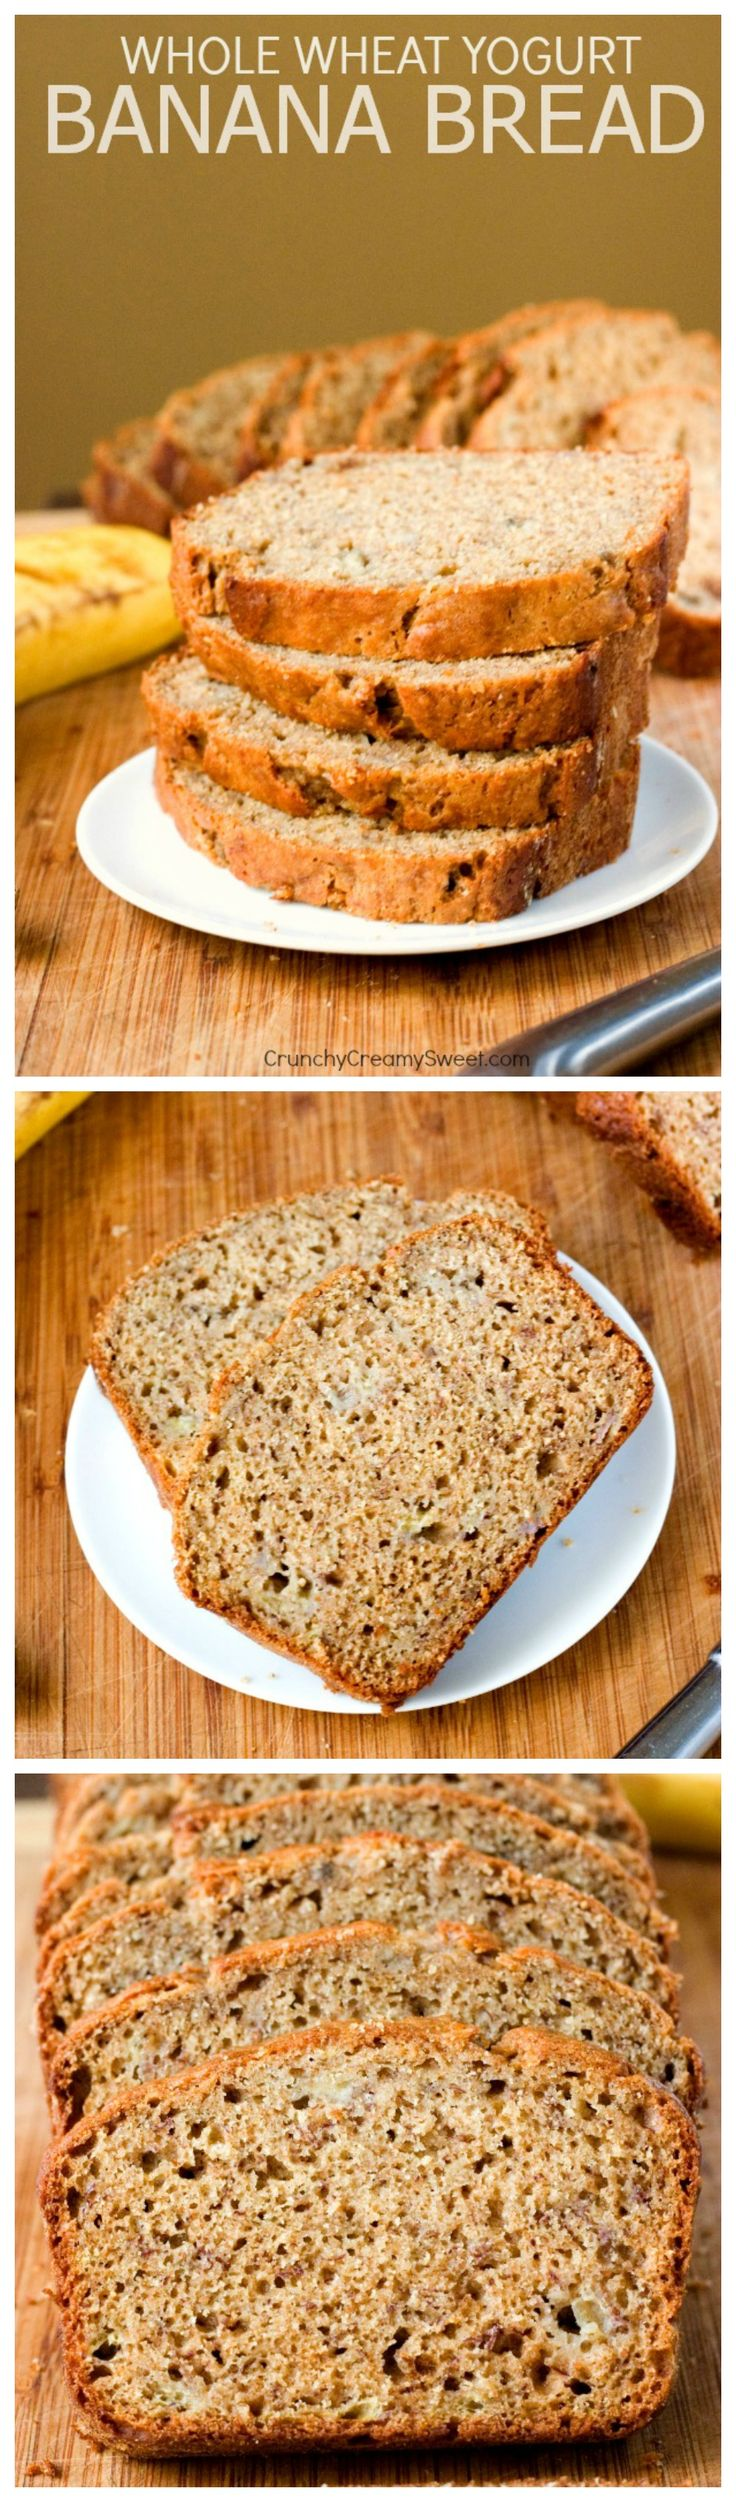 Whole Wheat Yogurt Banana Bread - a healthier way to enjoy your favorite quick bread